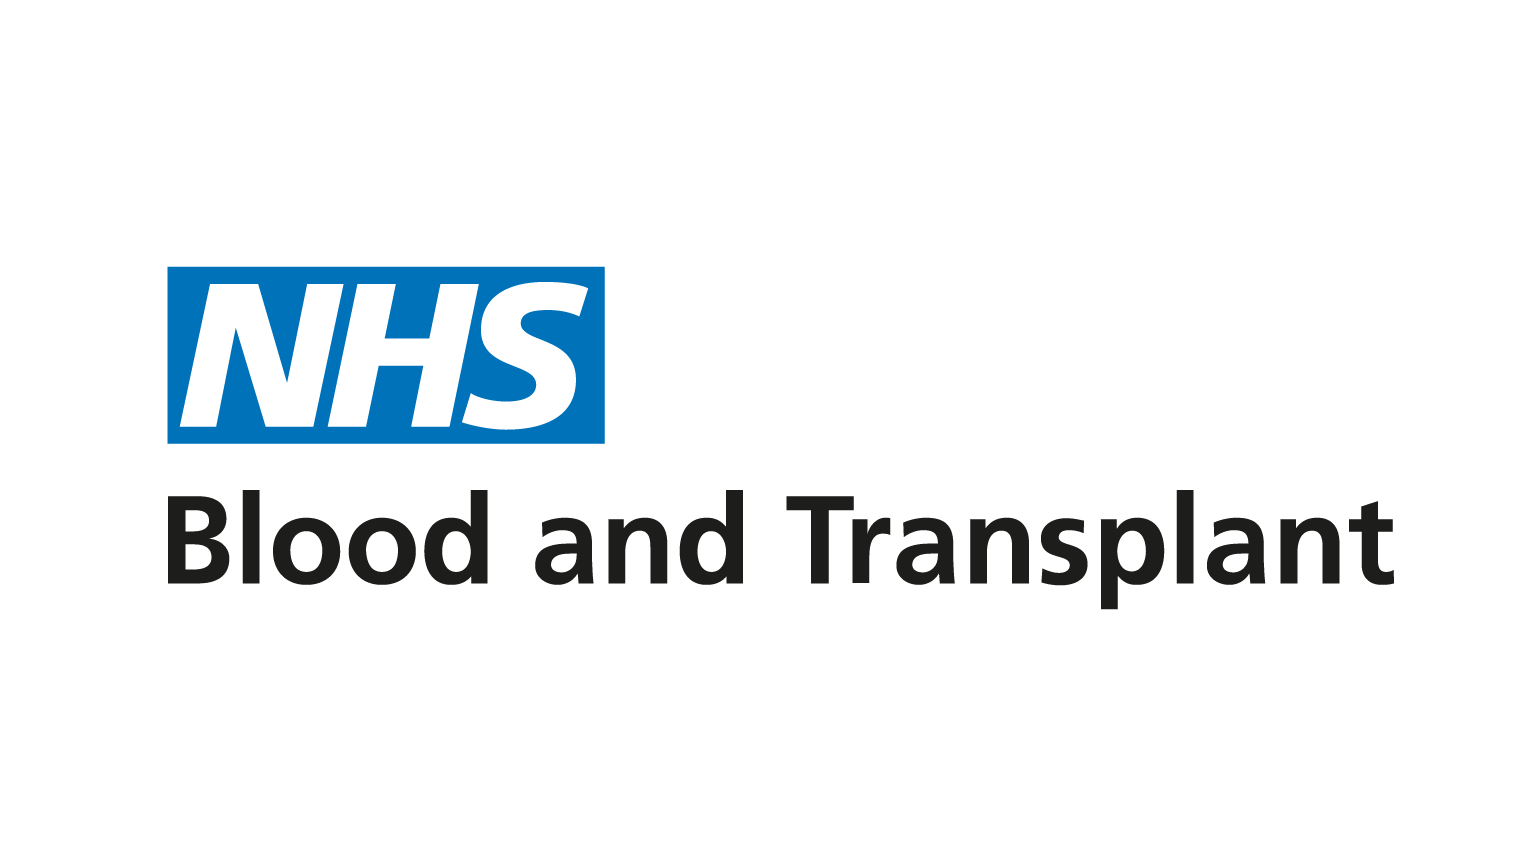 UK National Health Service Blood and Transplant logo